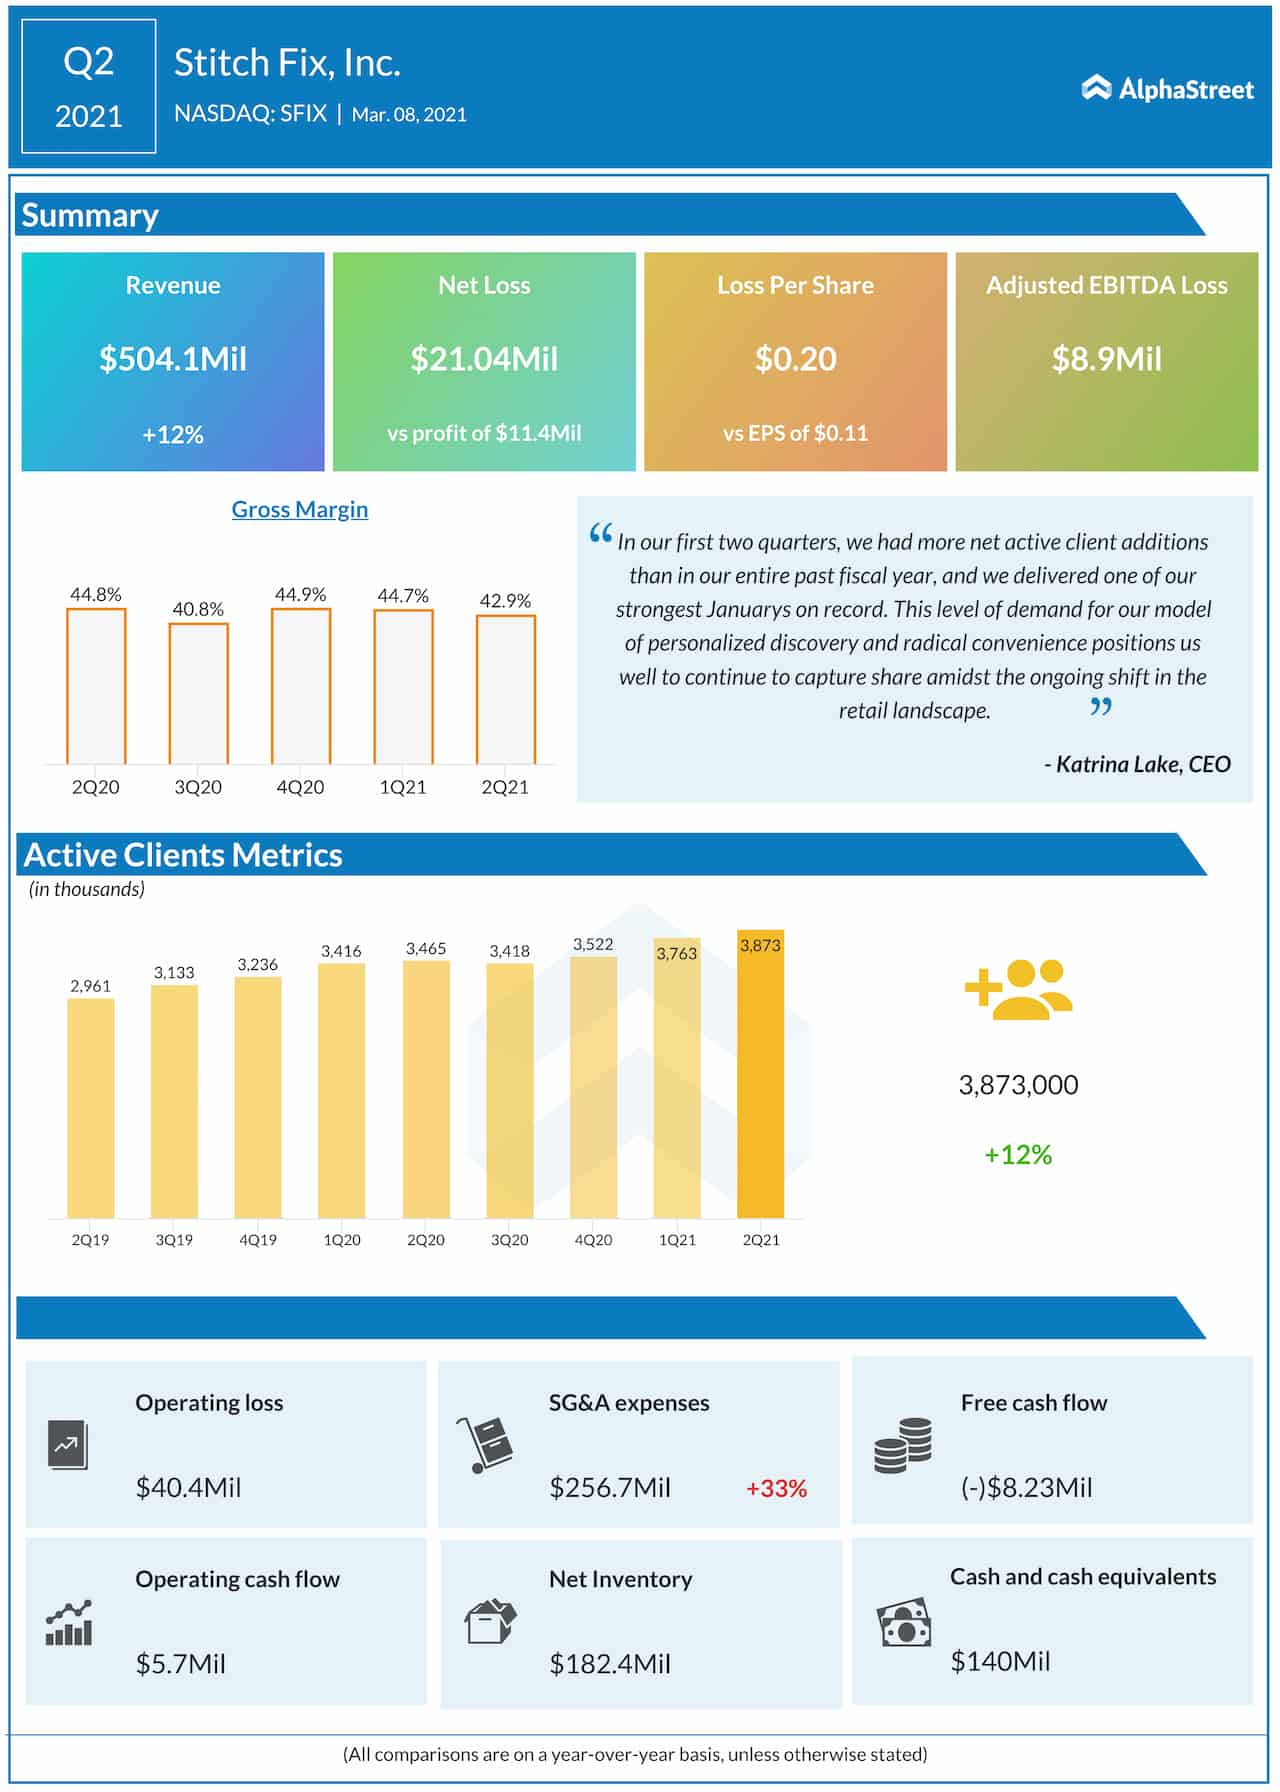 Stitch Fix Q2 2021 earnings infographic